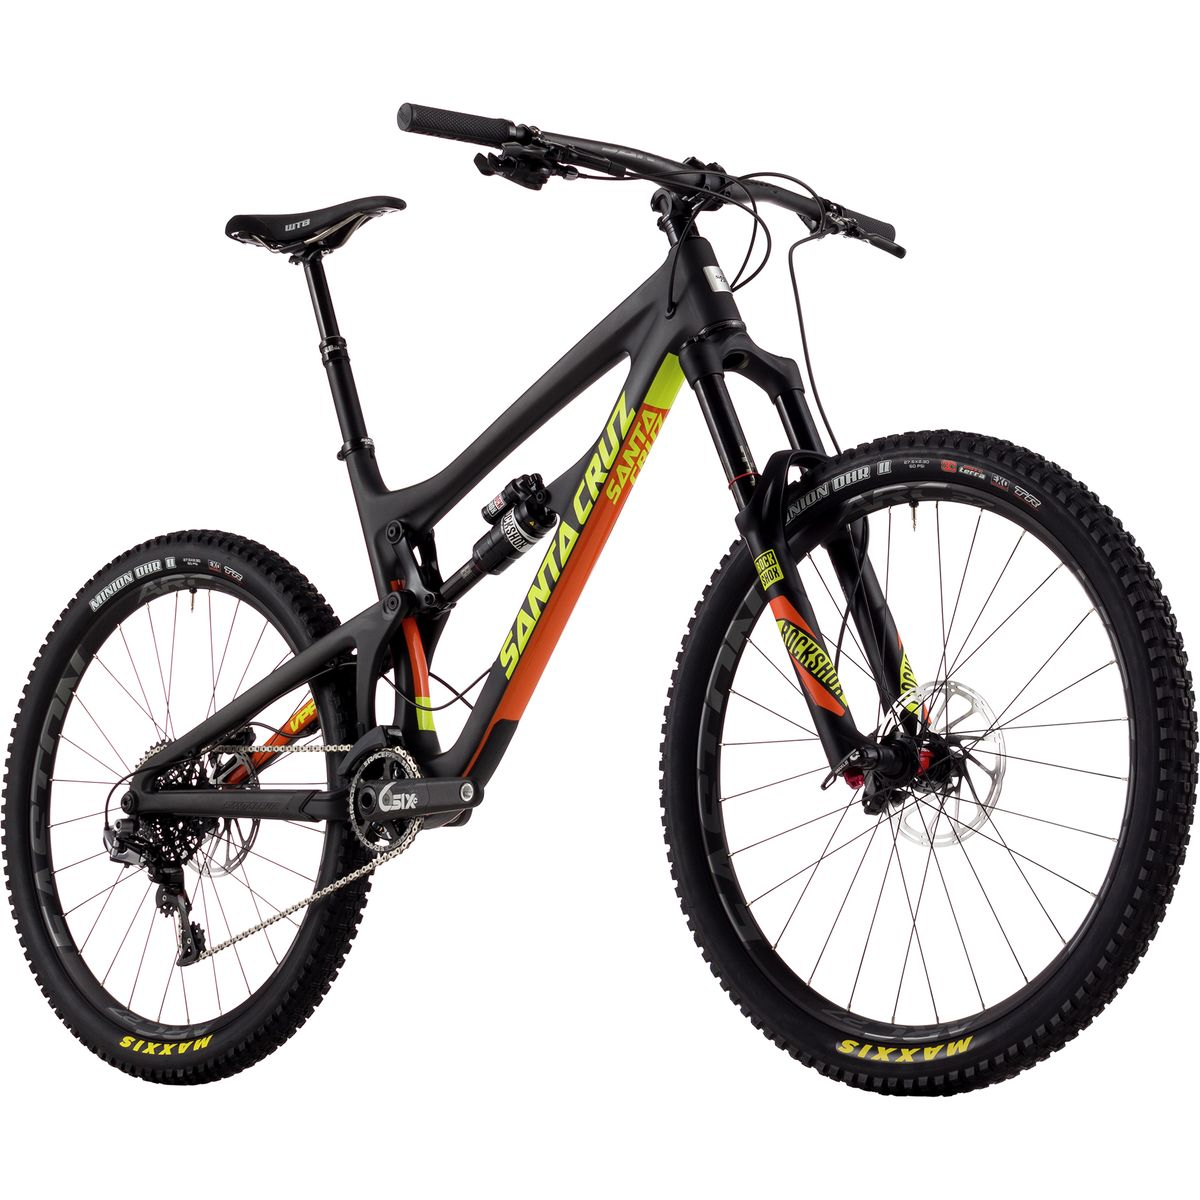 Santa Cruz Bicycles Nomad Carbon Cc Xx1 Complete Mountain